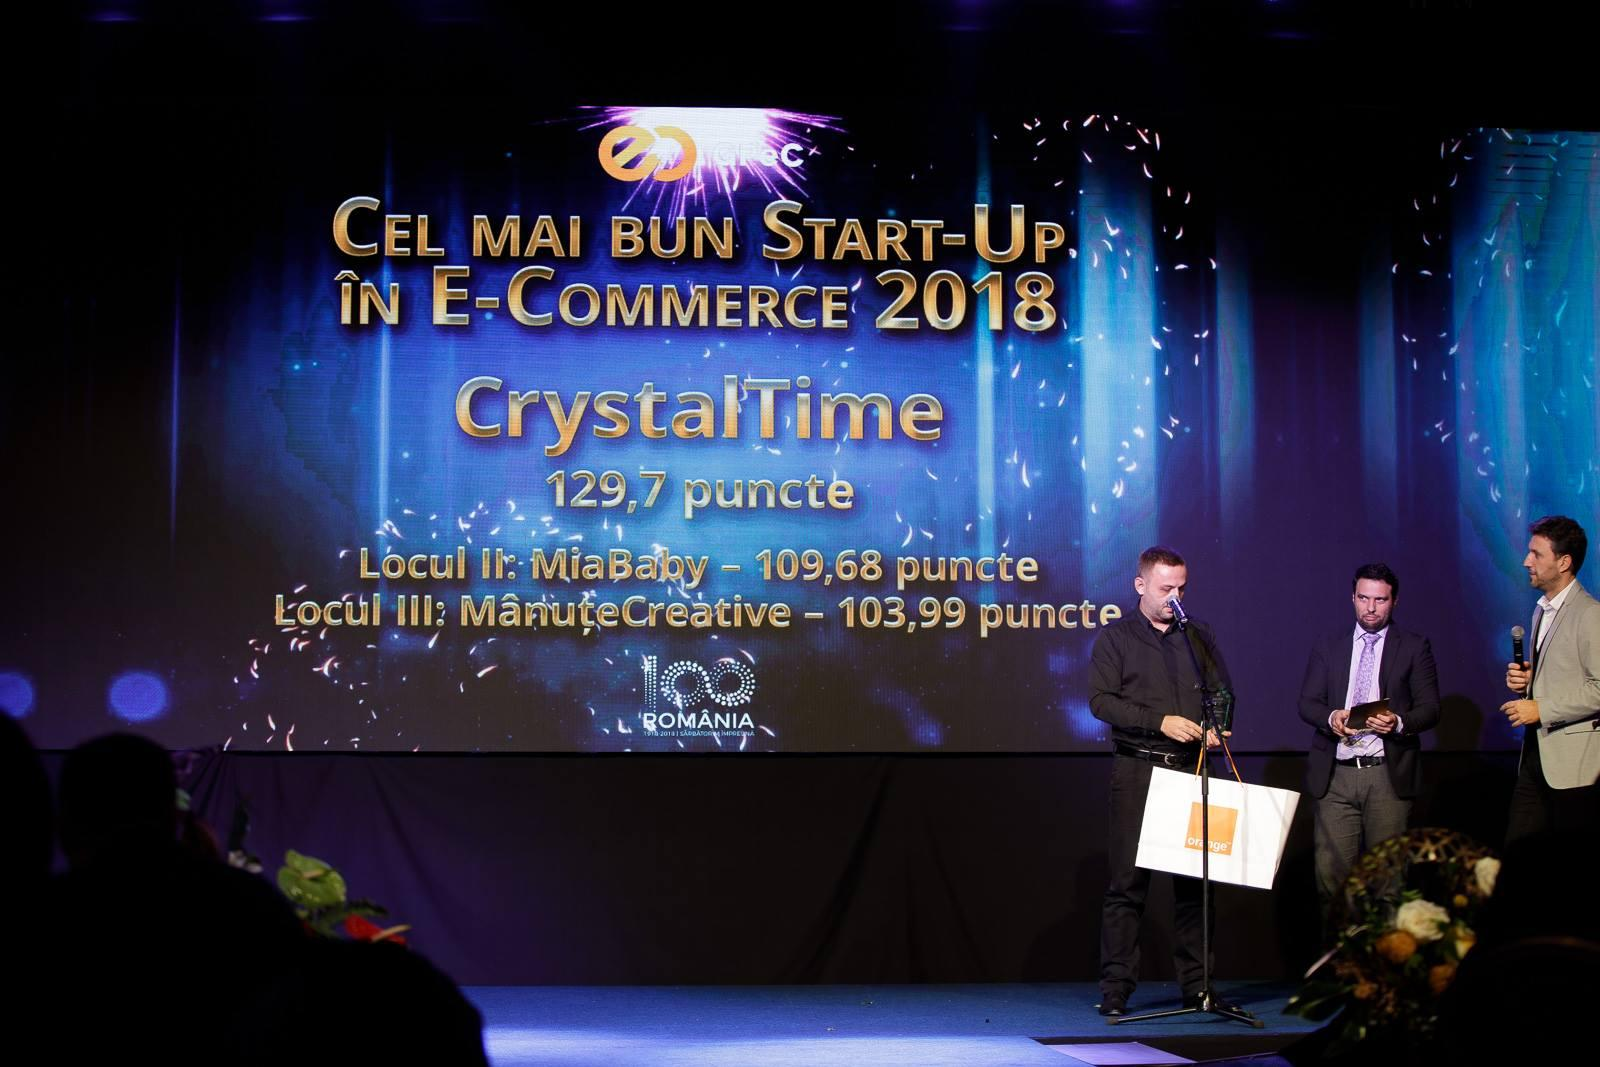 CrystalTime la GPEC- Cel mai bun start-up in 2018